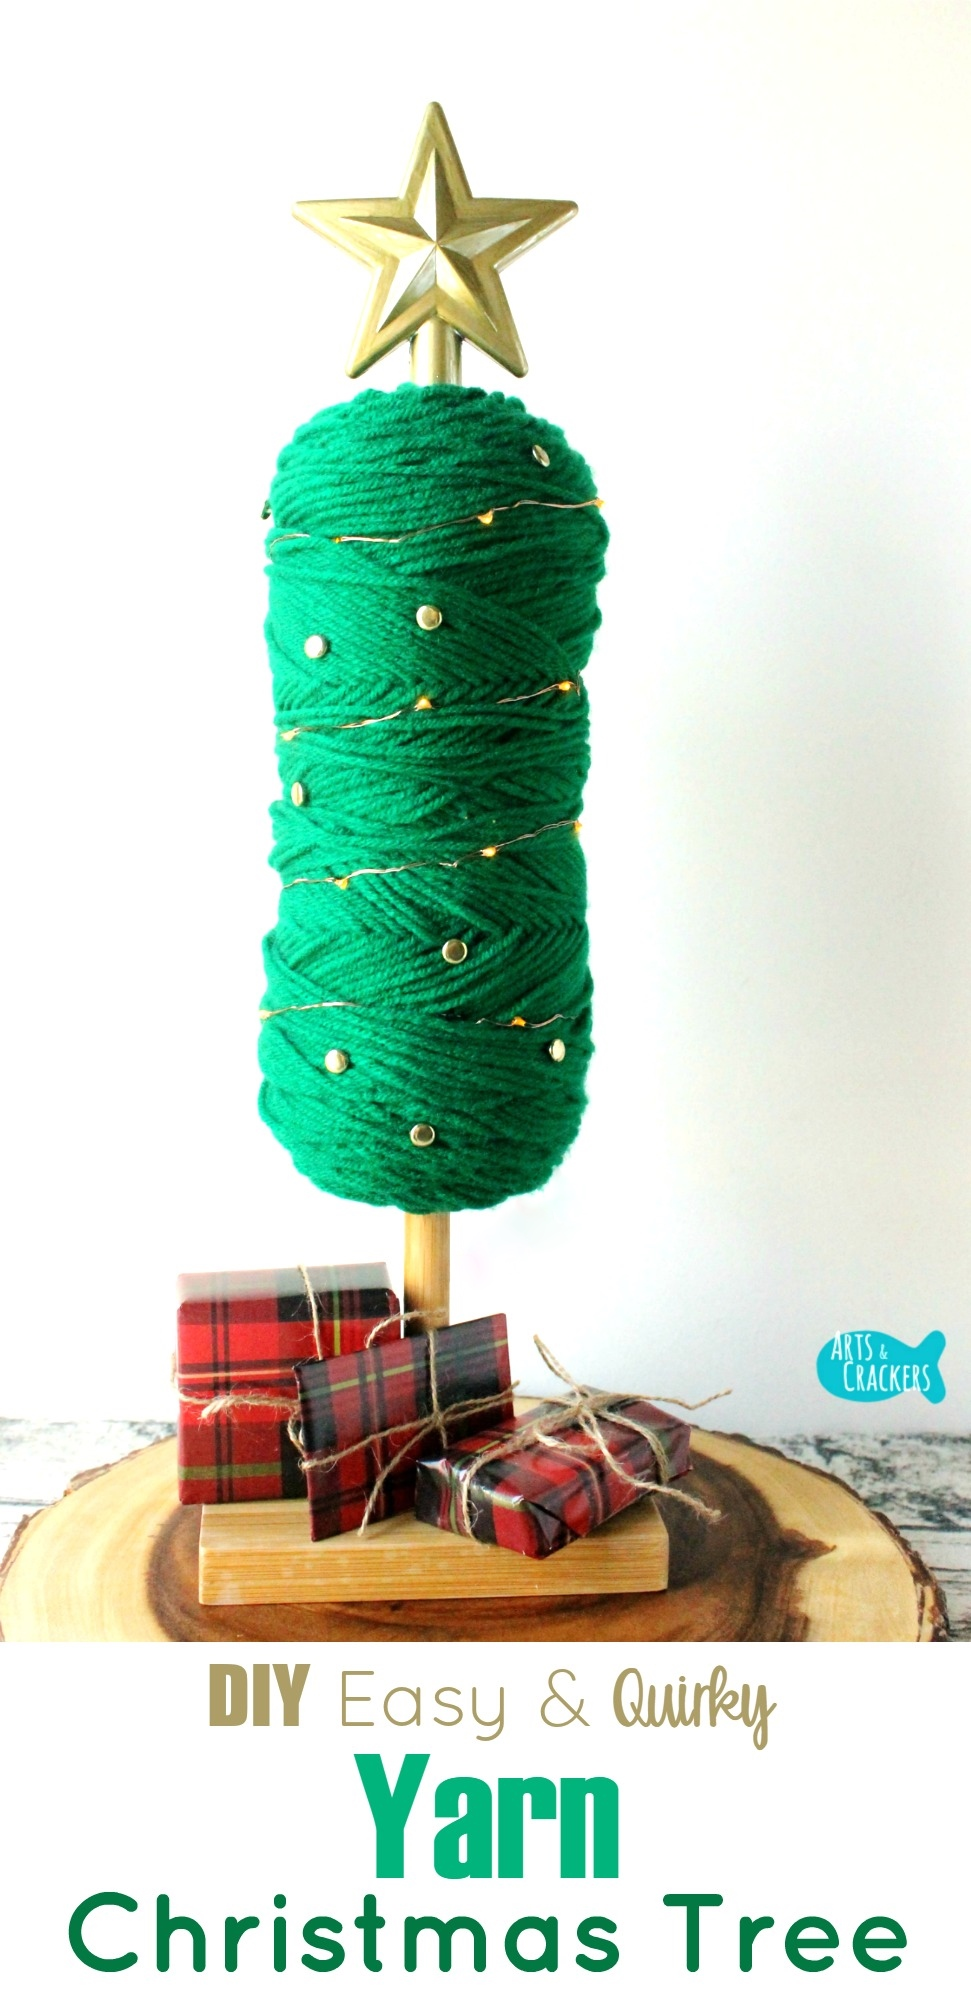 Yarn-Skein-Christmas-Tree-Tutorial David Haye Bench Press